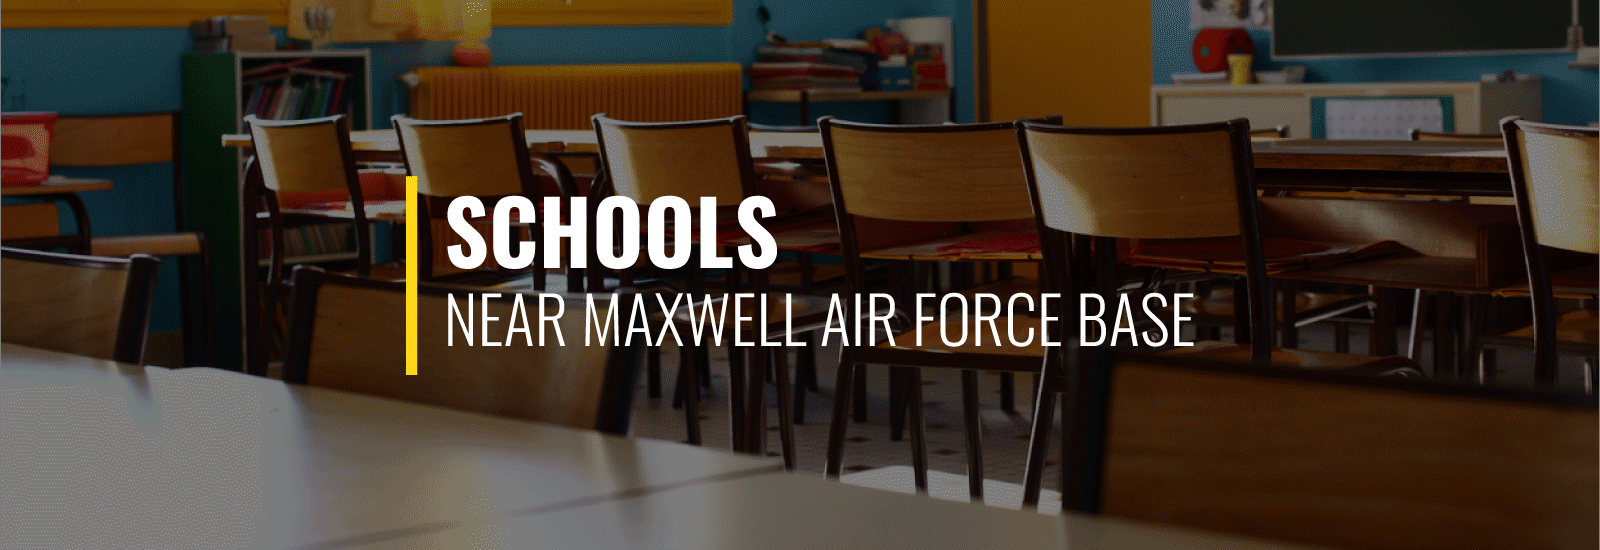 Maxwell Air Force Base Schools